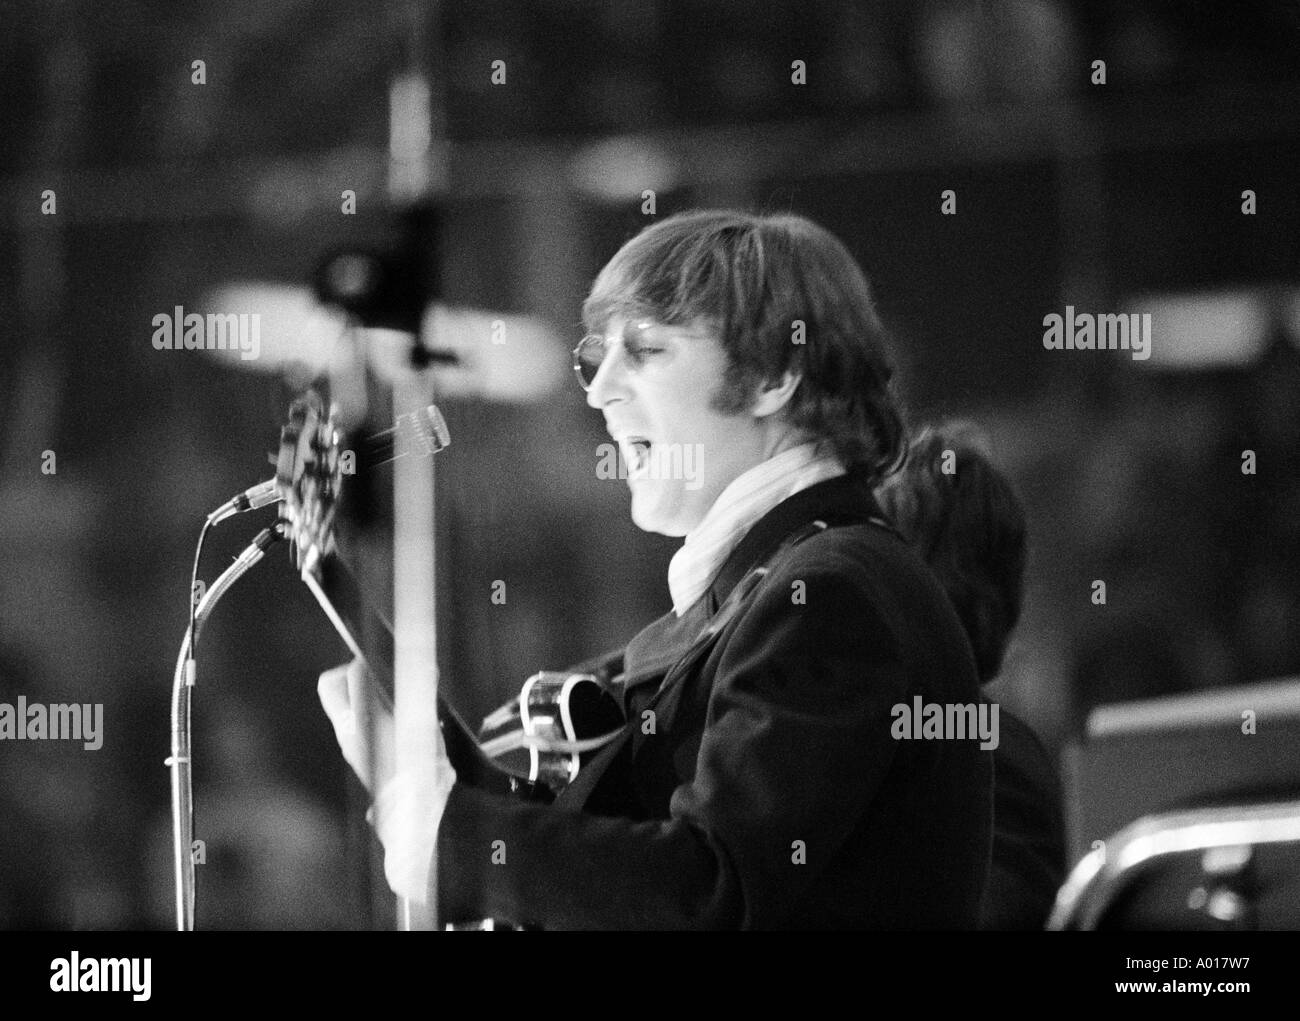 The Beatles, concert in Essen, Ruhr area, Gruga Hall, 1966, 1960s, the sixties, England, London, Great Britain, British pop band, music, musician, group, pop music, singers, John Lennon, guitar, b&w, black and white, black & white photography - Stock Image